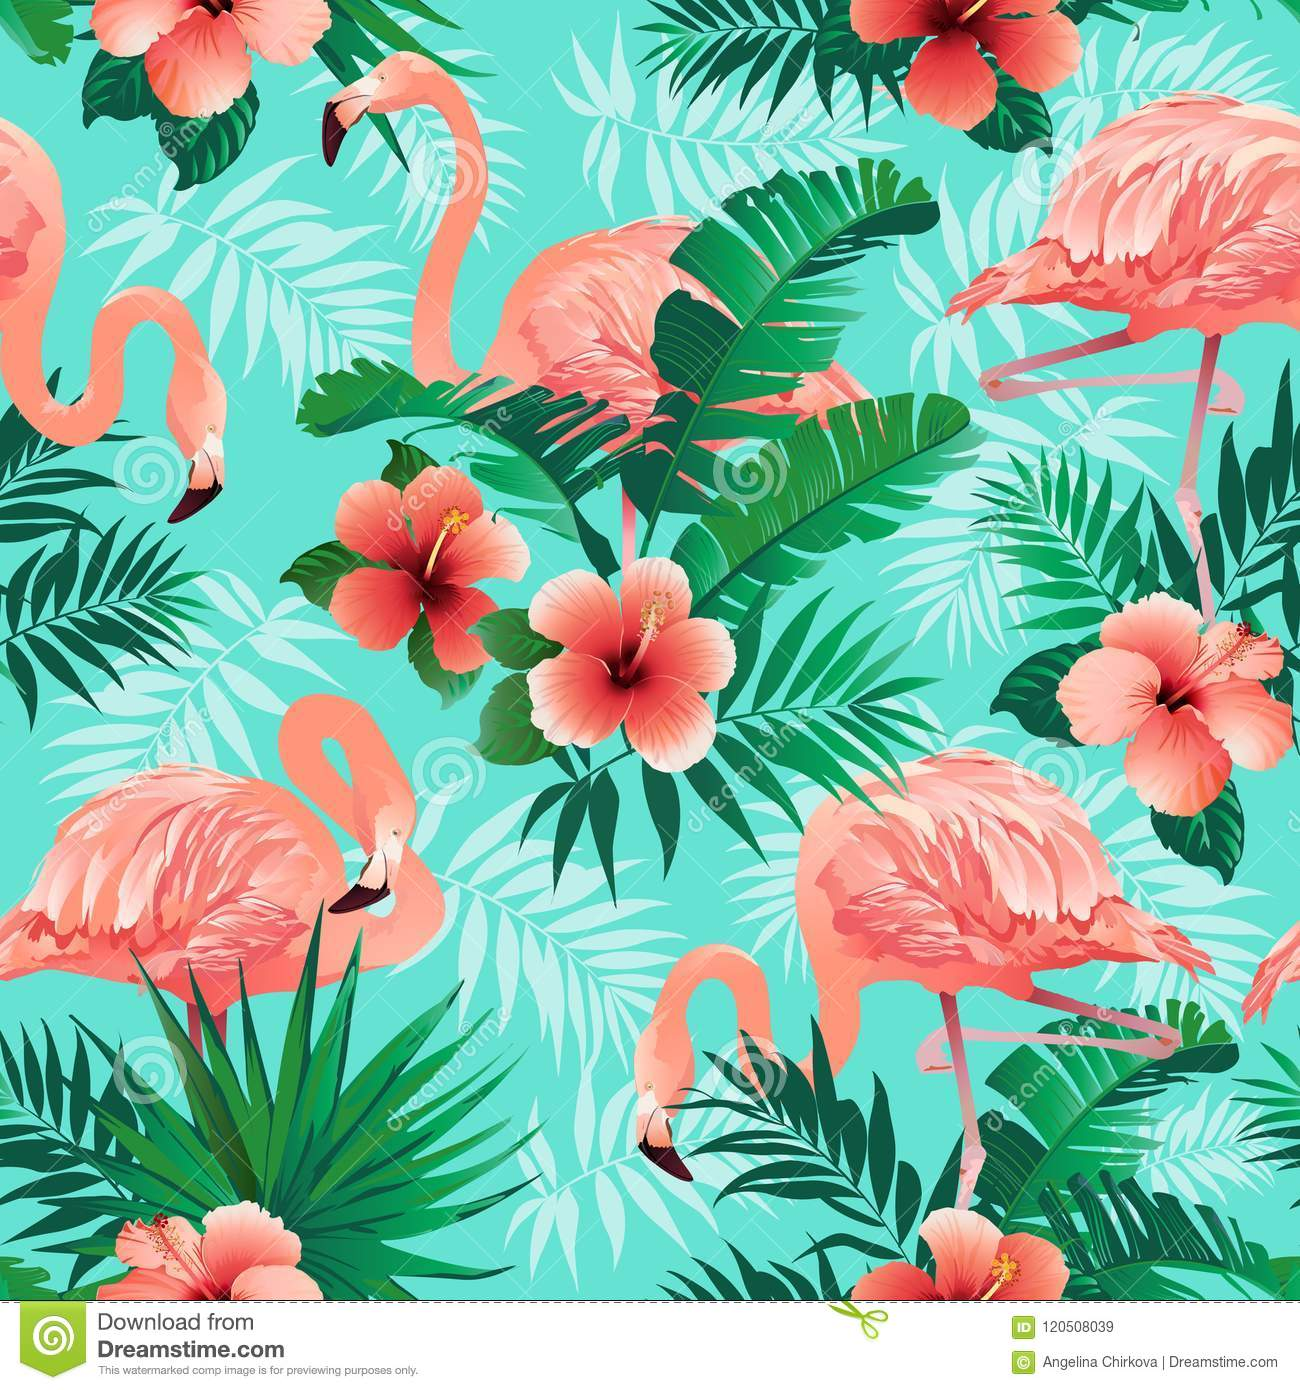 Pink flamingos, exotic birds, tropical palm leaves, trees, jungle leaves seamless vector floral pattern background.